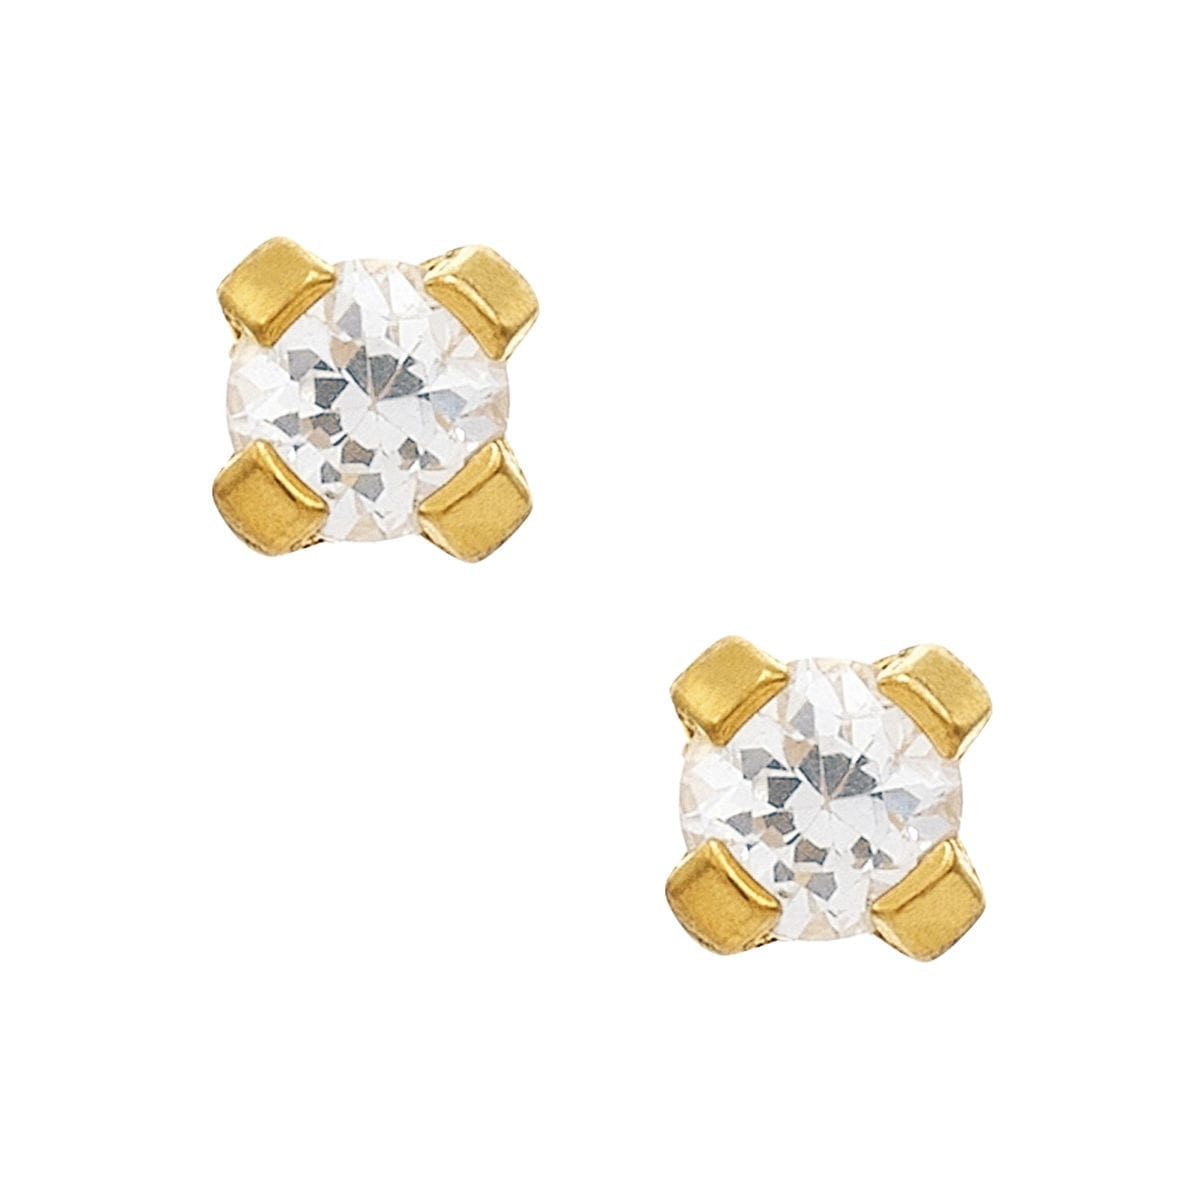 studex-sensitive-3mm-cz-gold-plated-prong-earrings